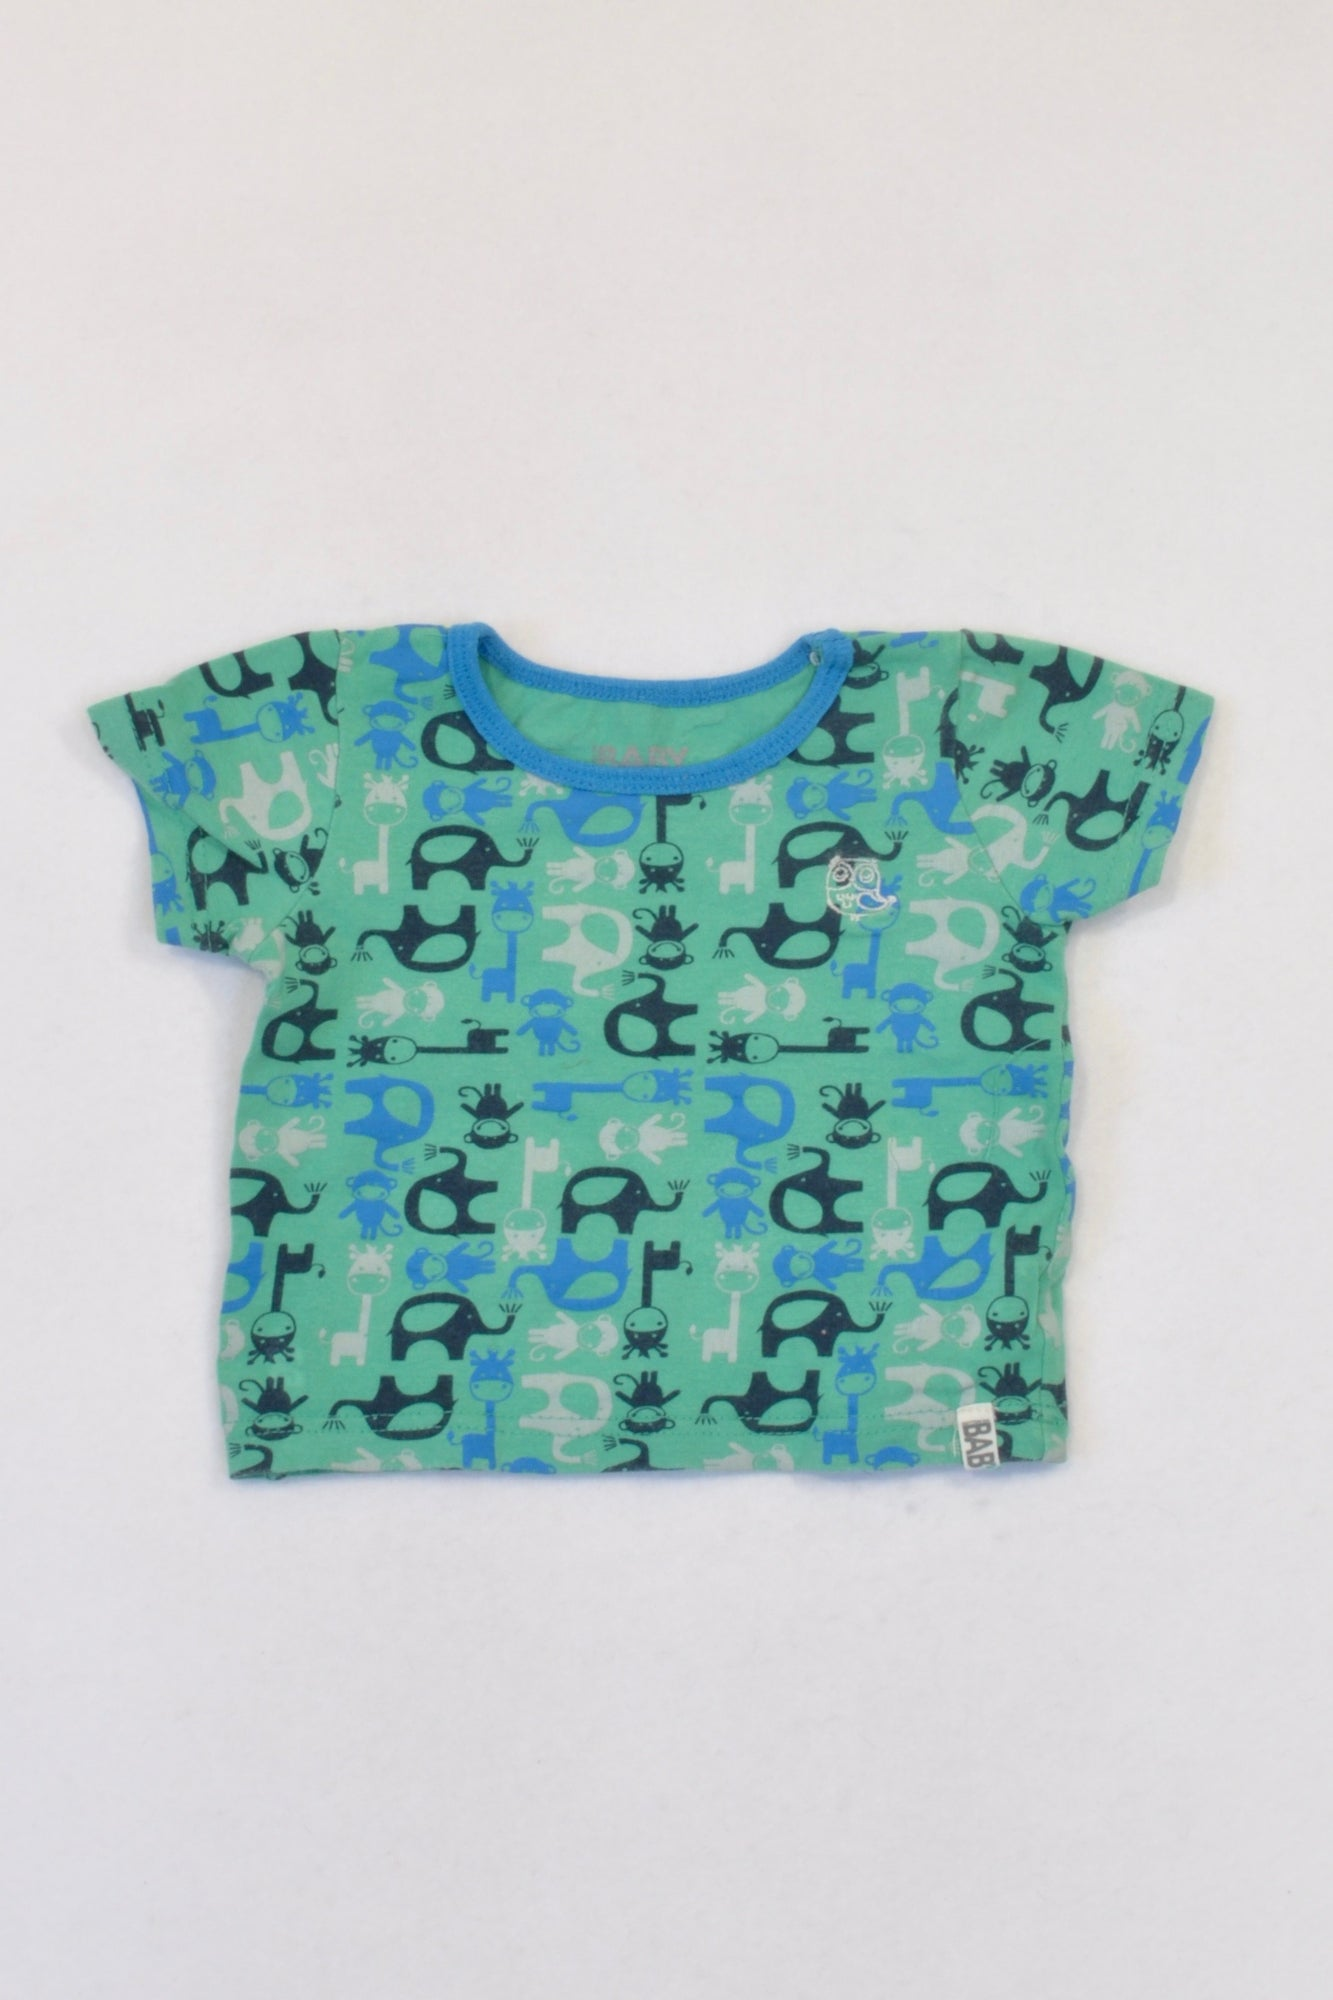 Cotton On Green Safari Animal T-shirt Boys 3-6 months